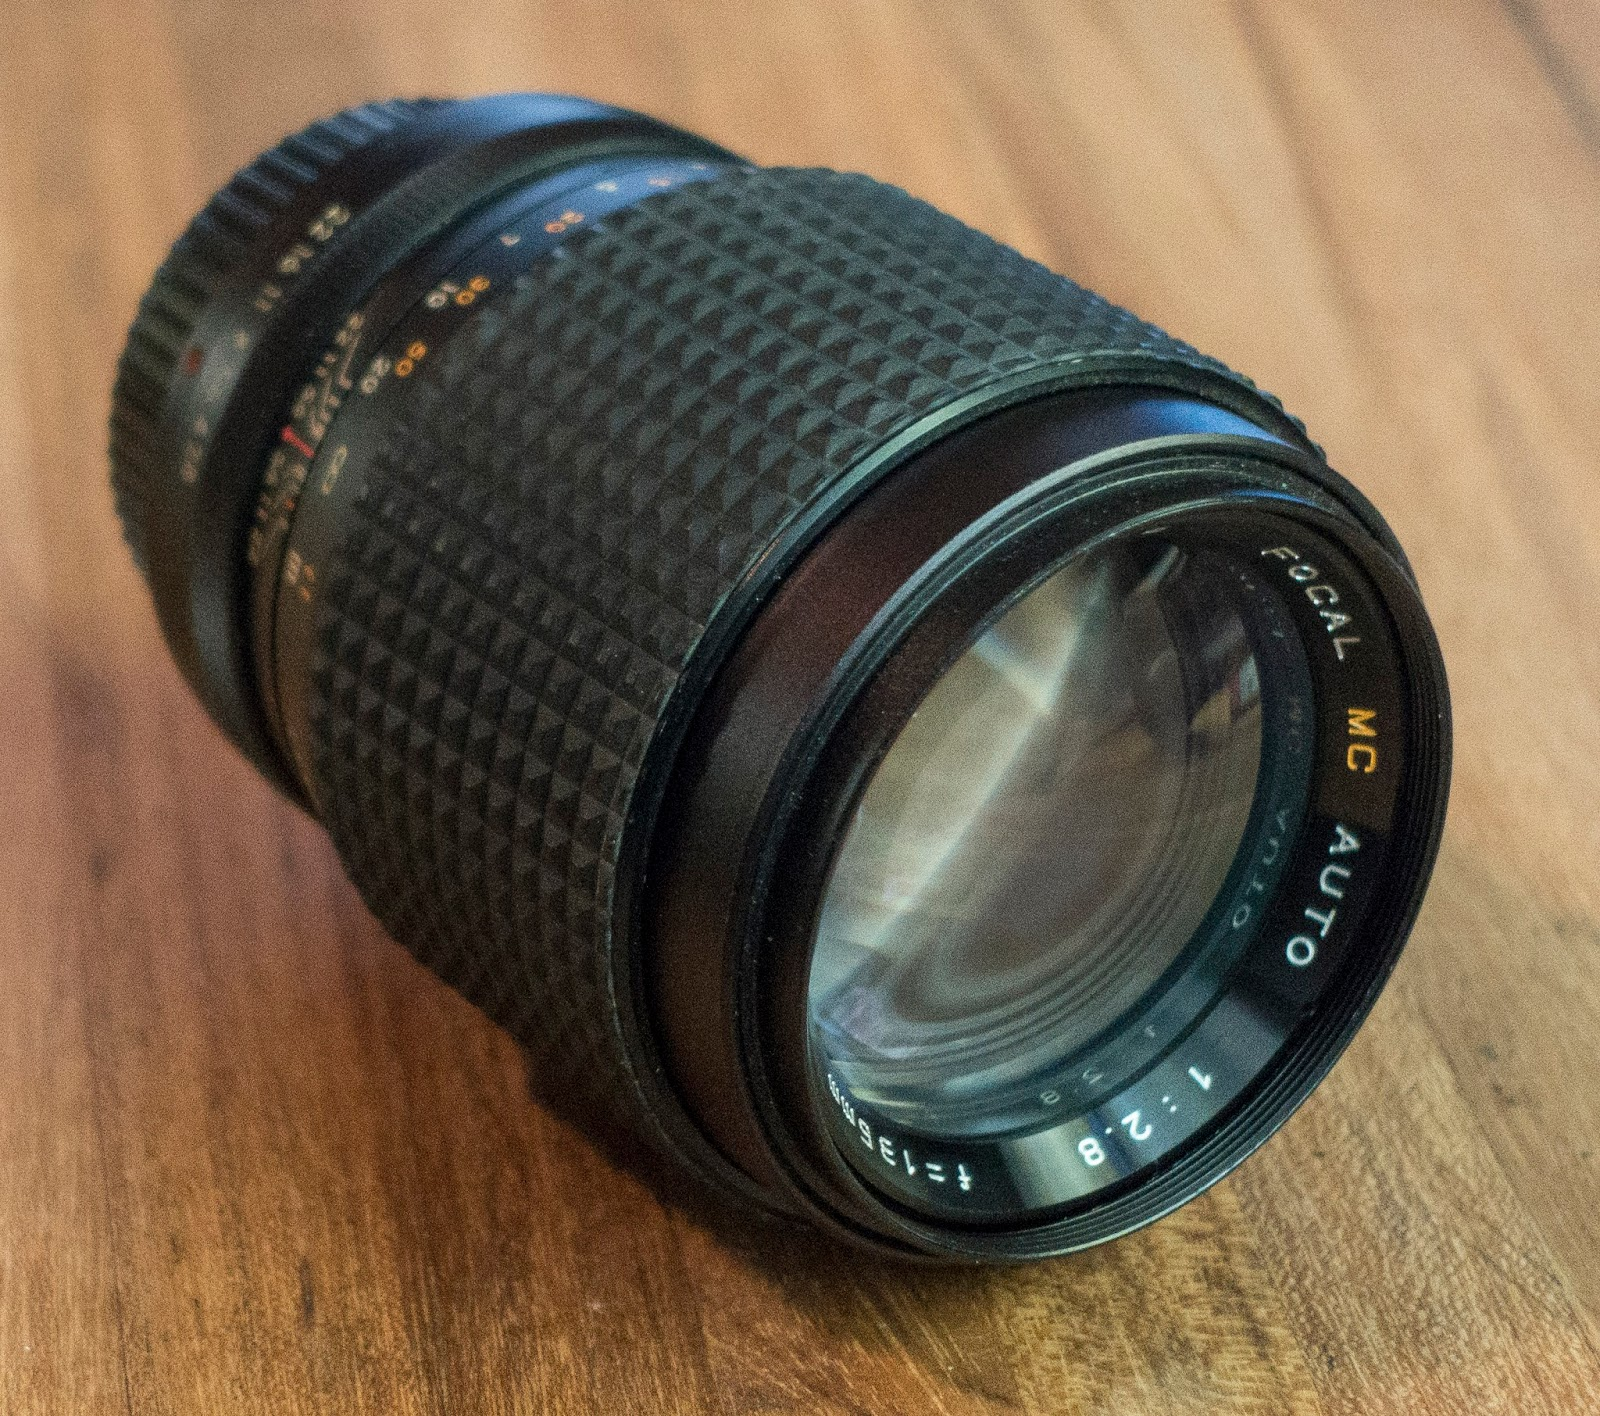 Playing With Lenses: A better Focal MC Auto 1:2 8 135mm